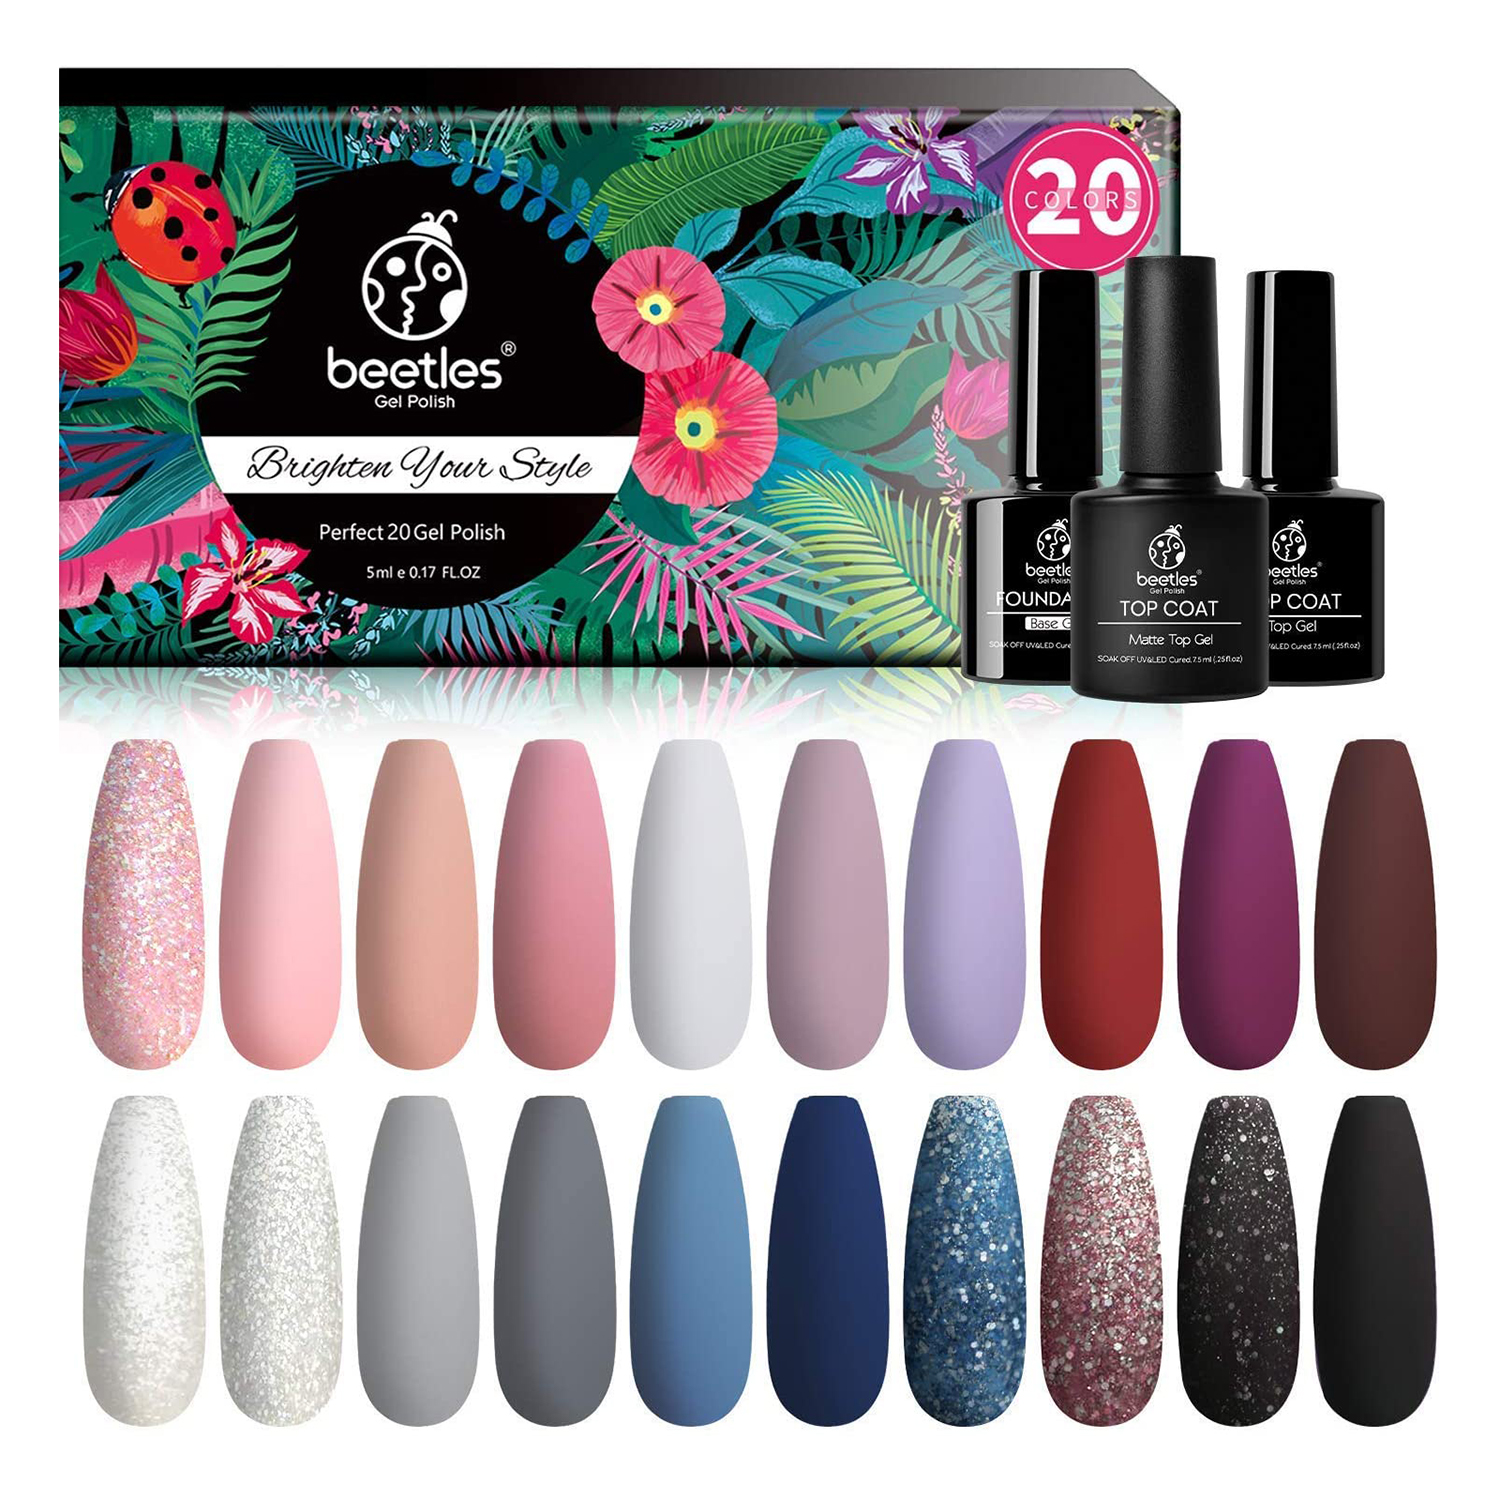 Beetles Modern Muse Gel Nail Polish Kit